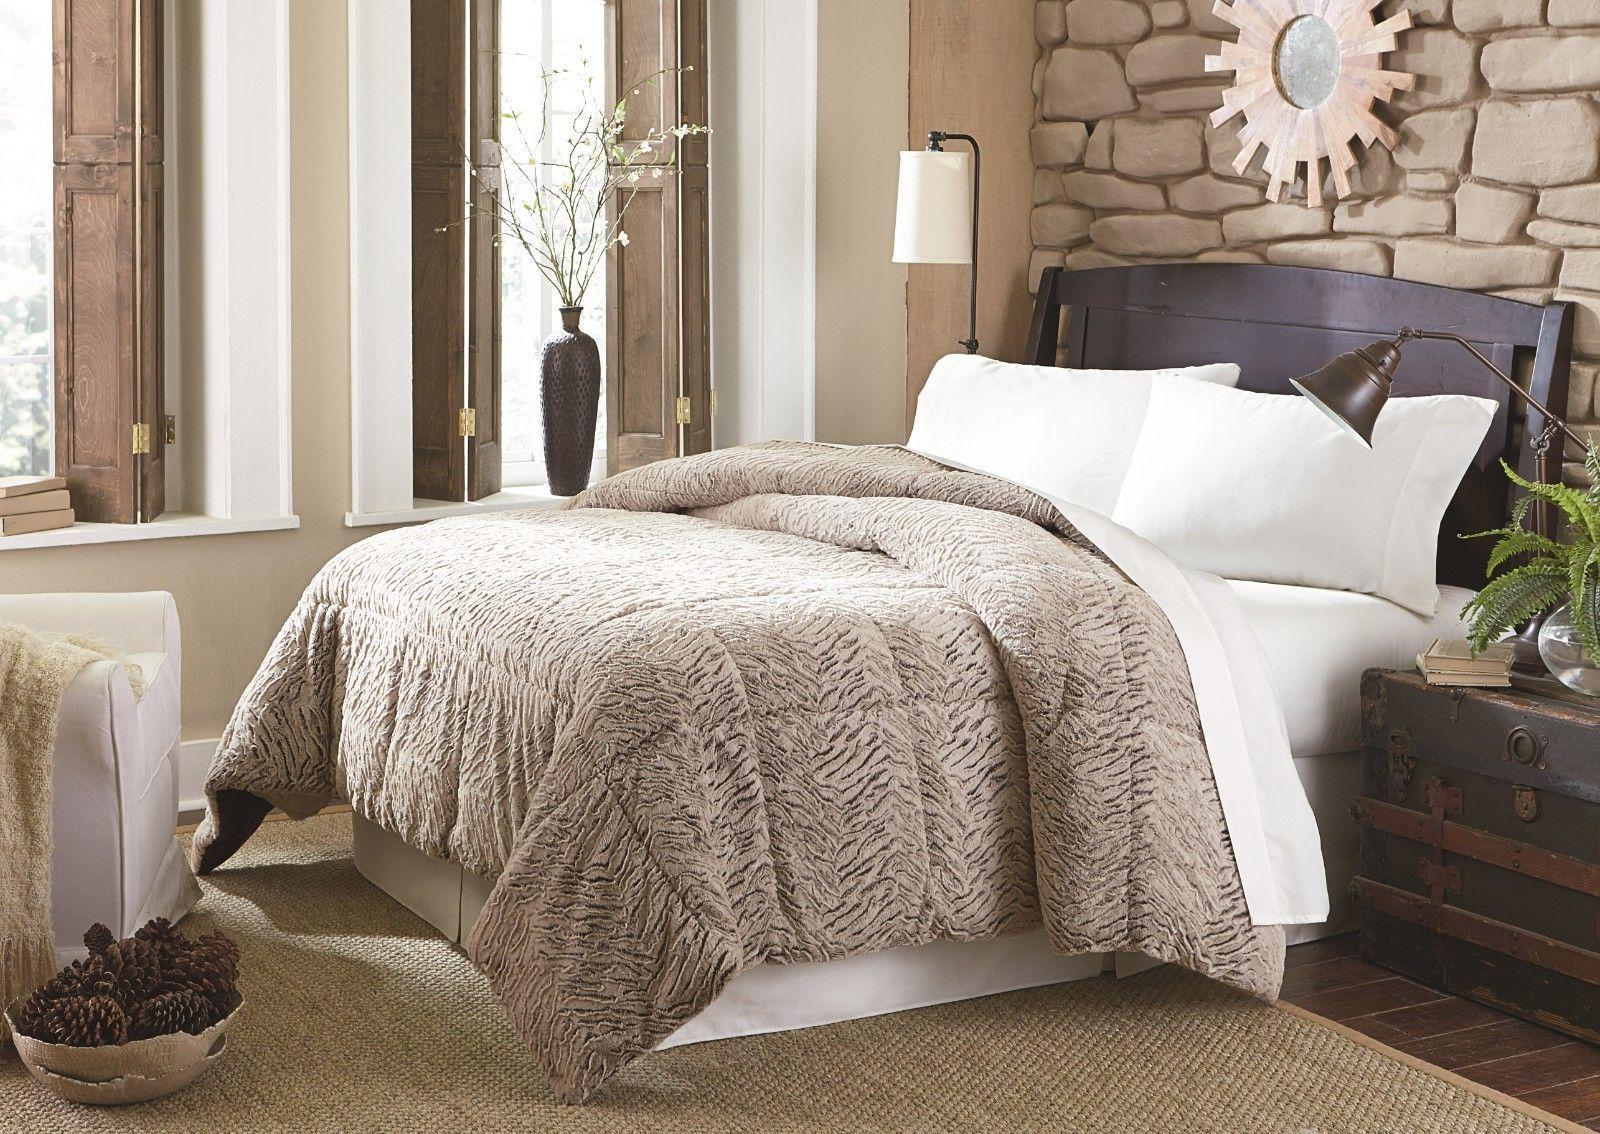 faux fur brown and black pattern comforter